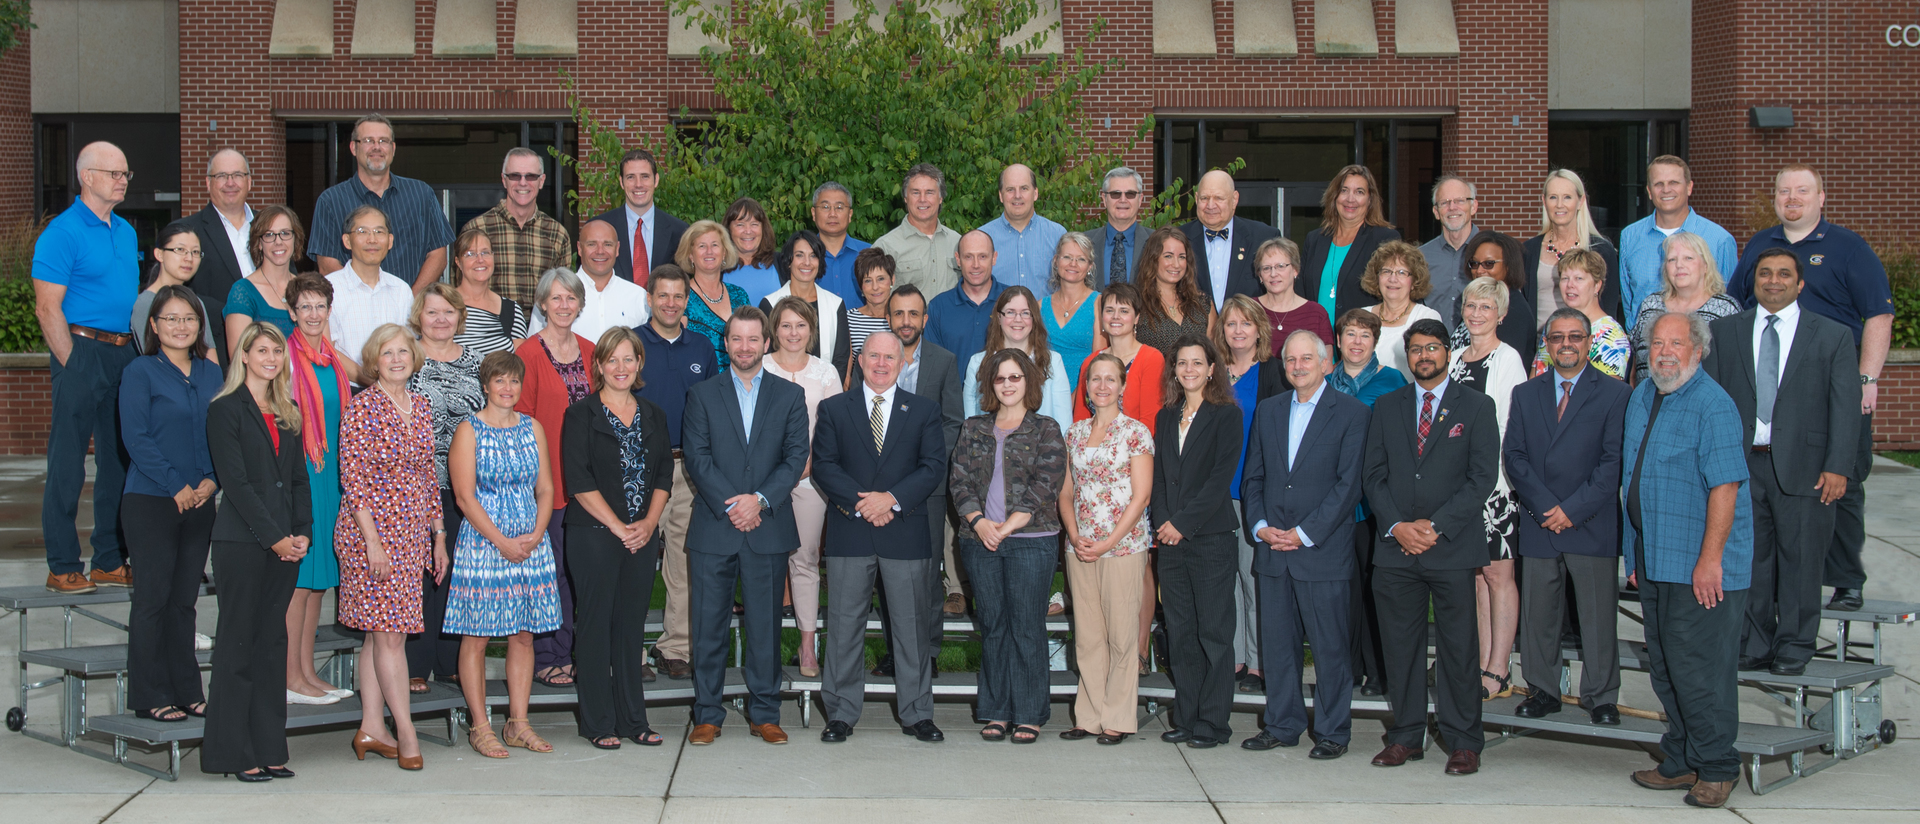 50th anniversary faculty and staff